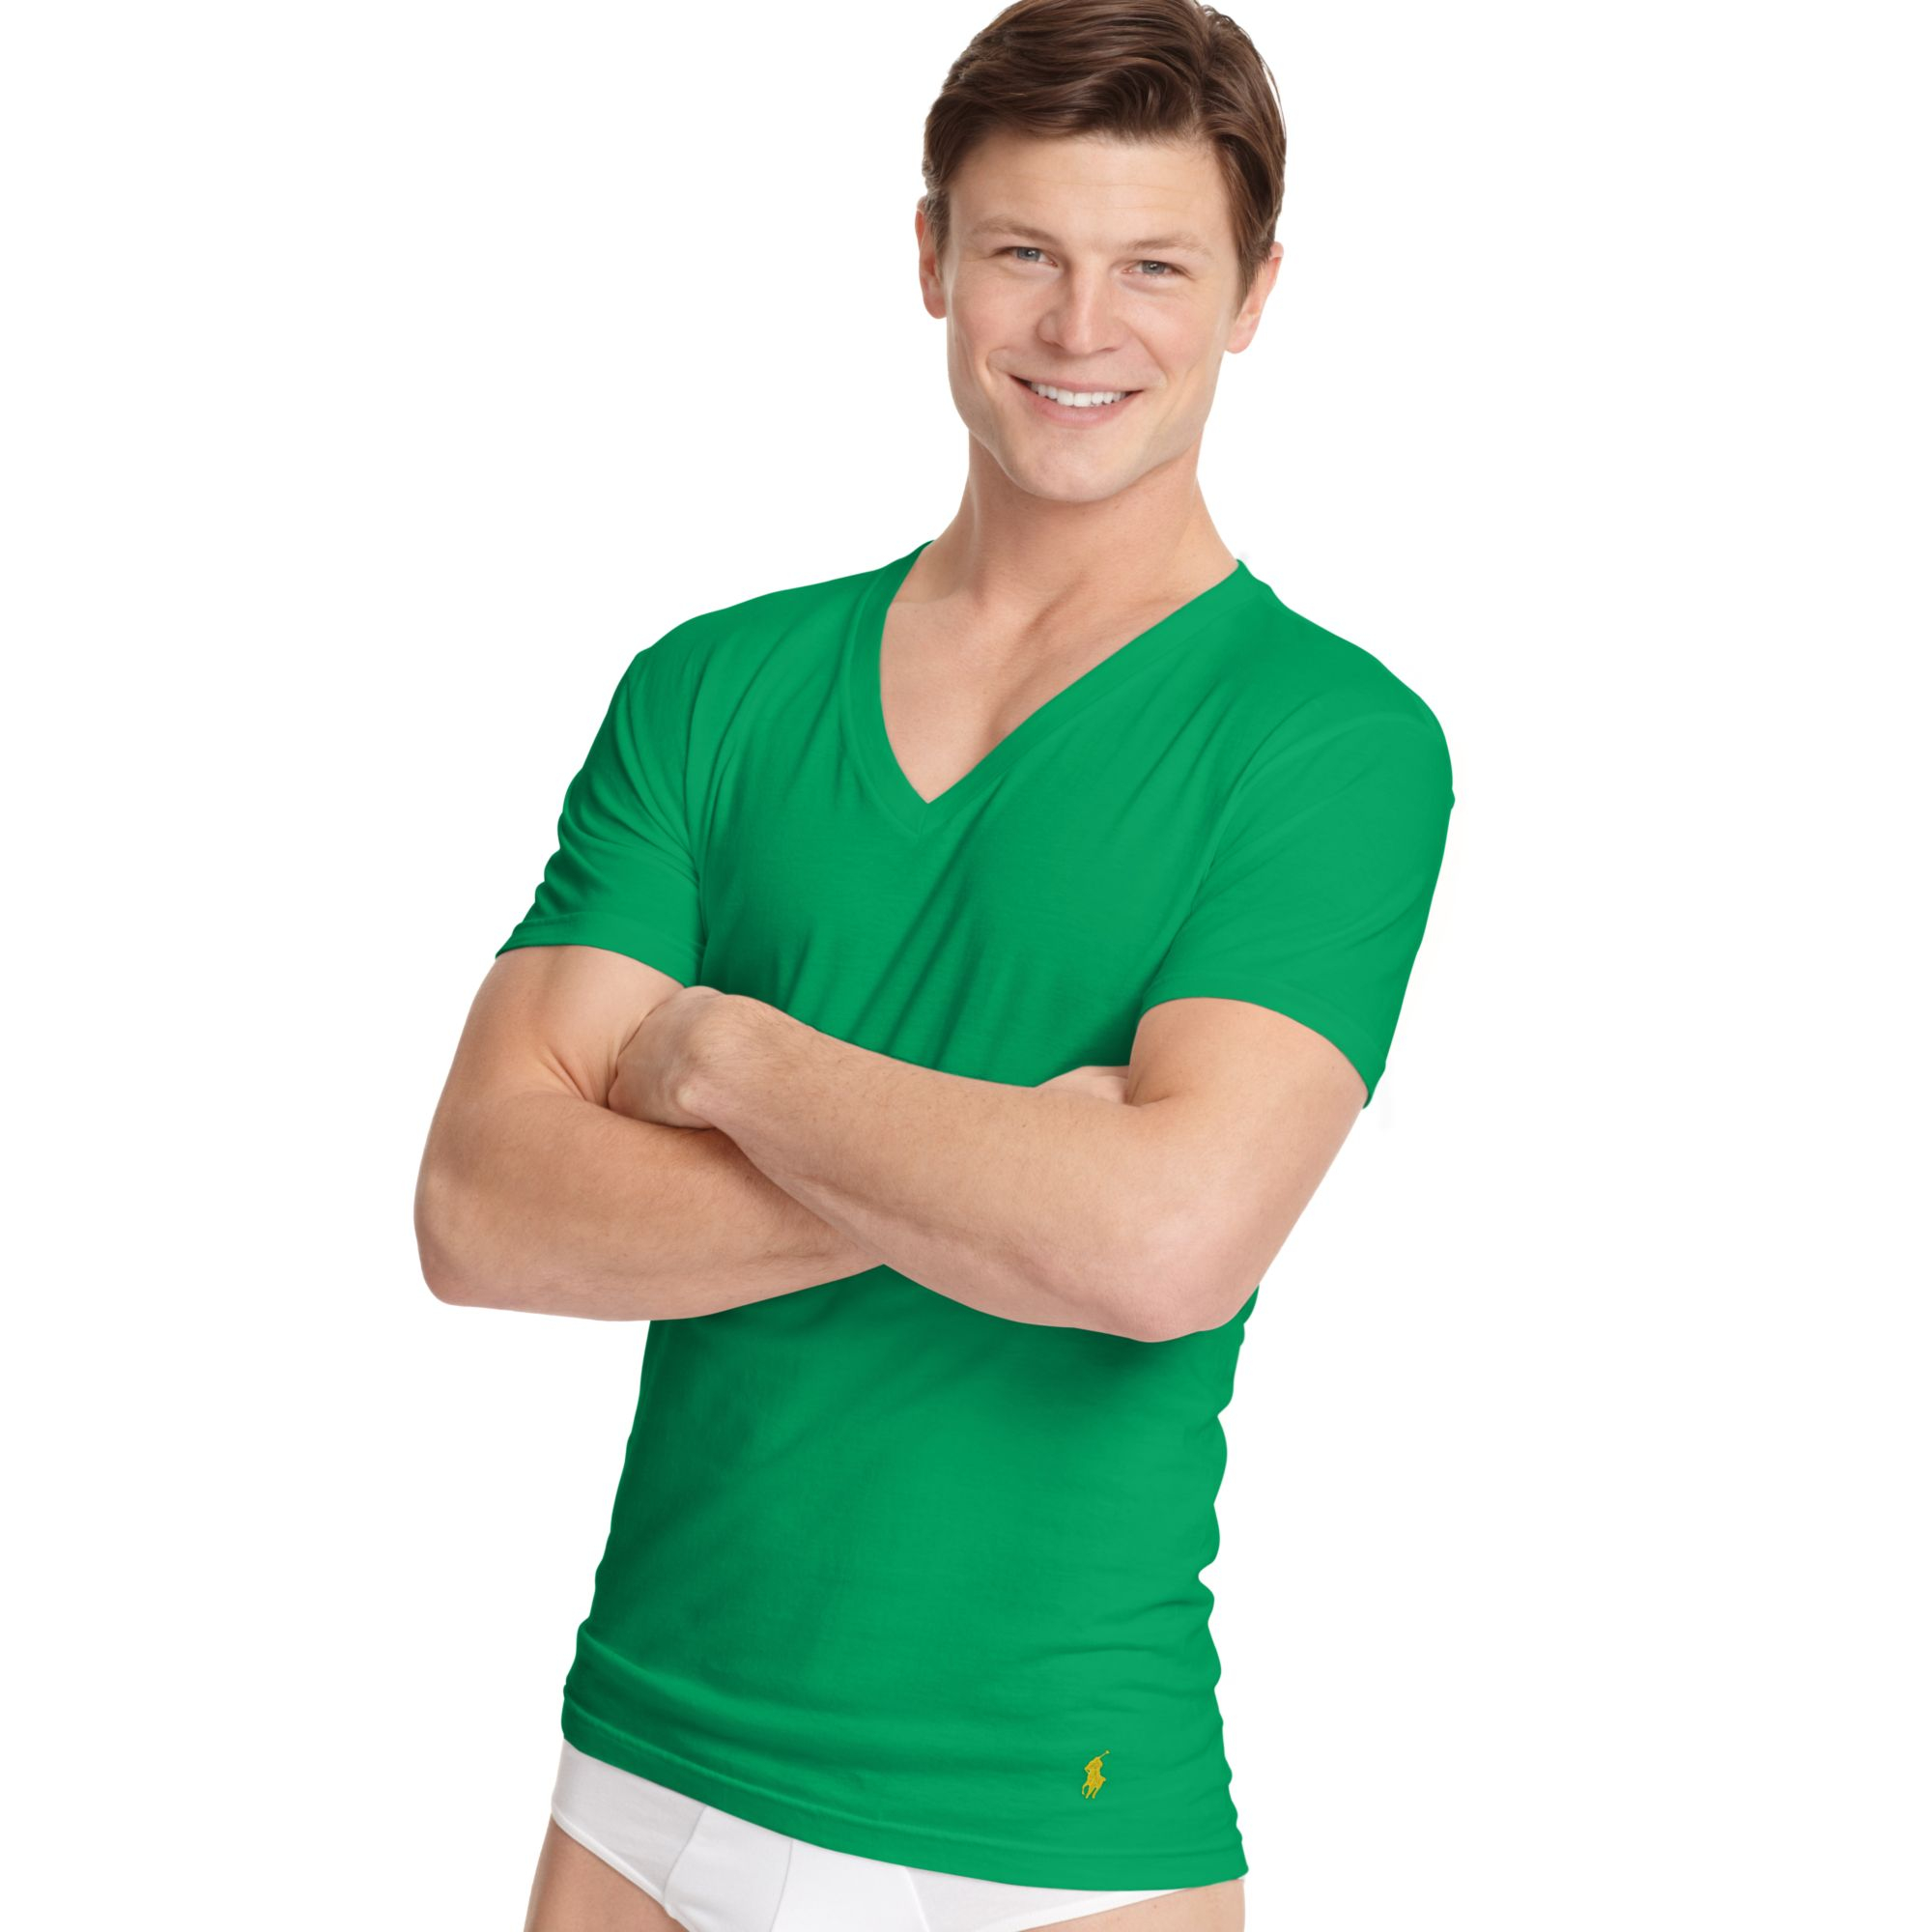 Polo Ralph Lauren Men's Big and Tall Classic-Fit V-Neck Short-Sleeve Cotton Jersey T-Shirt Limited-Time Special $